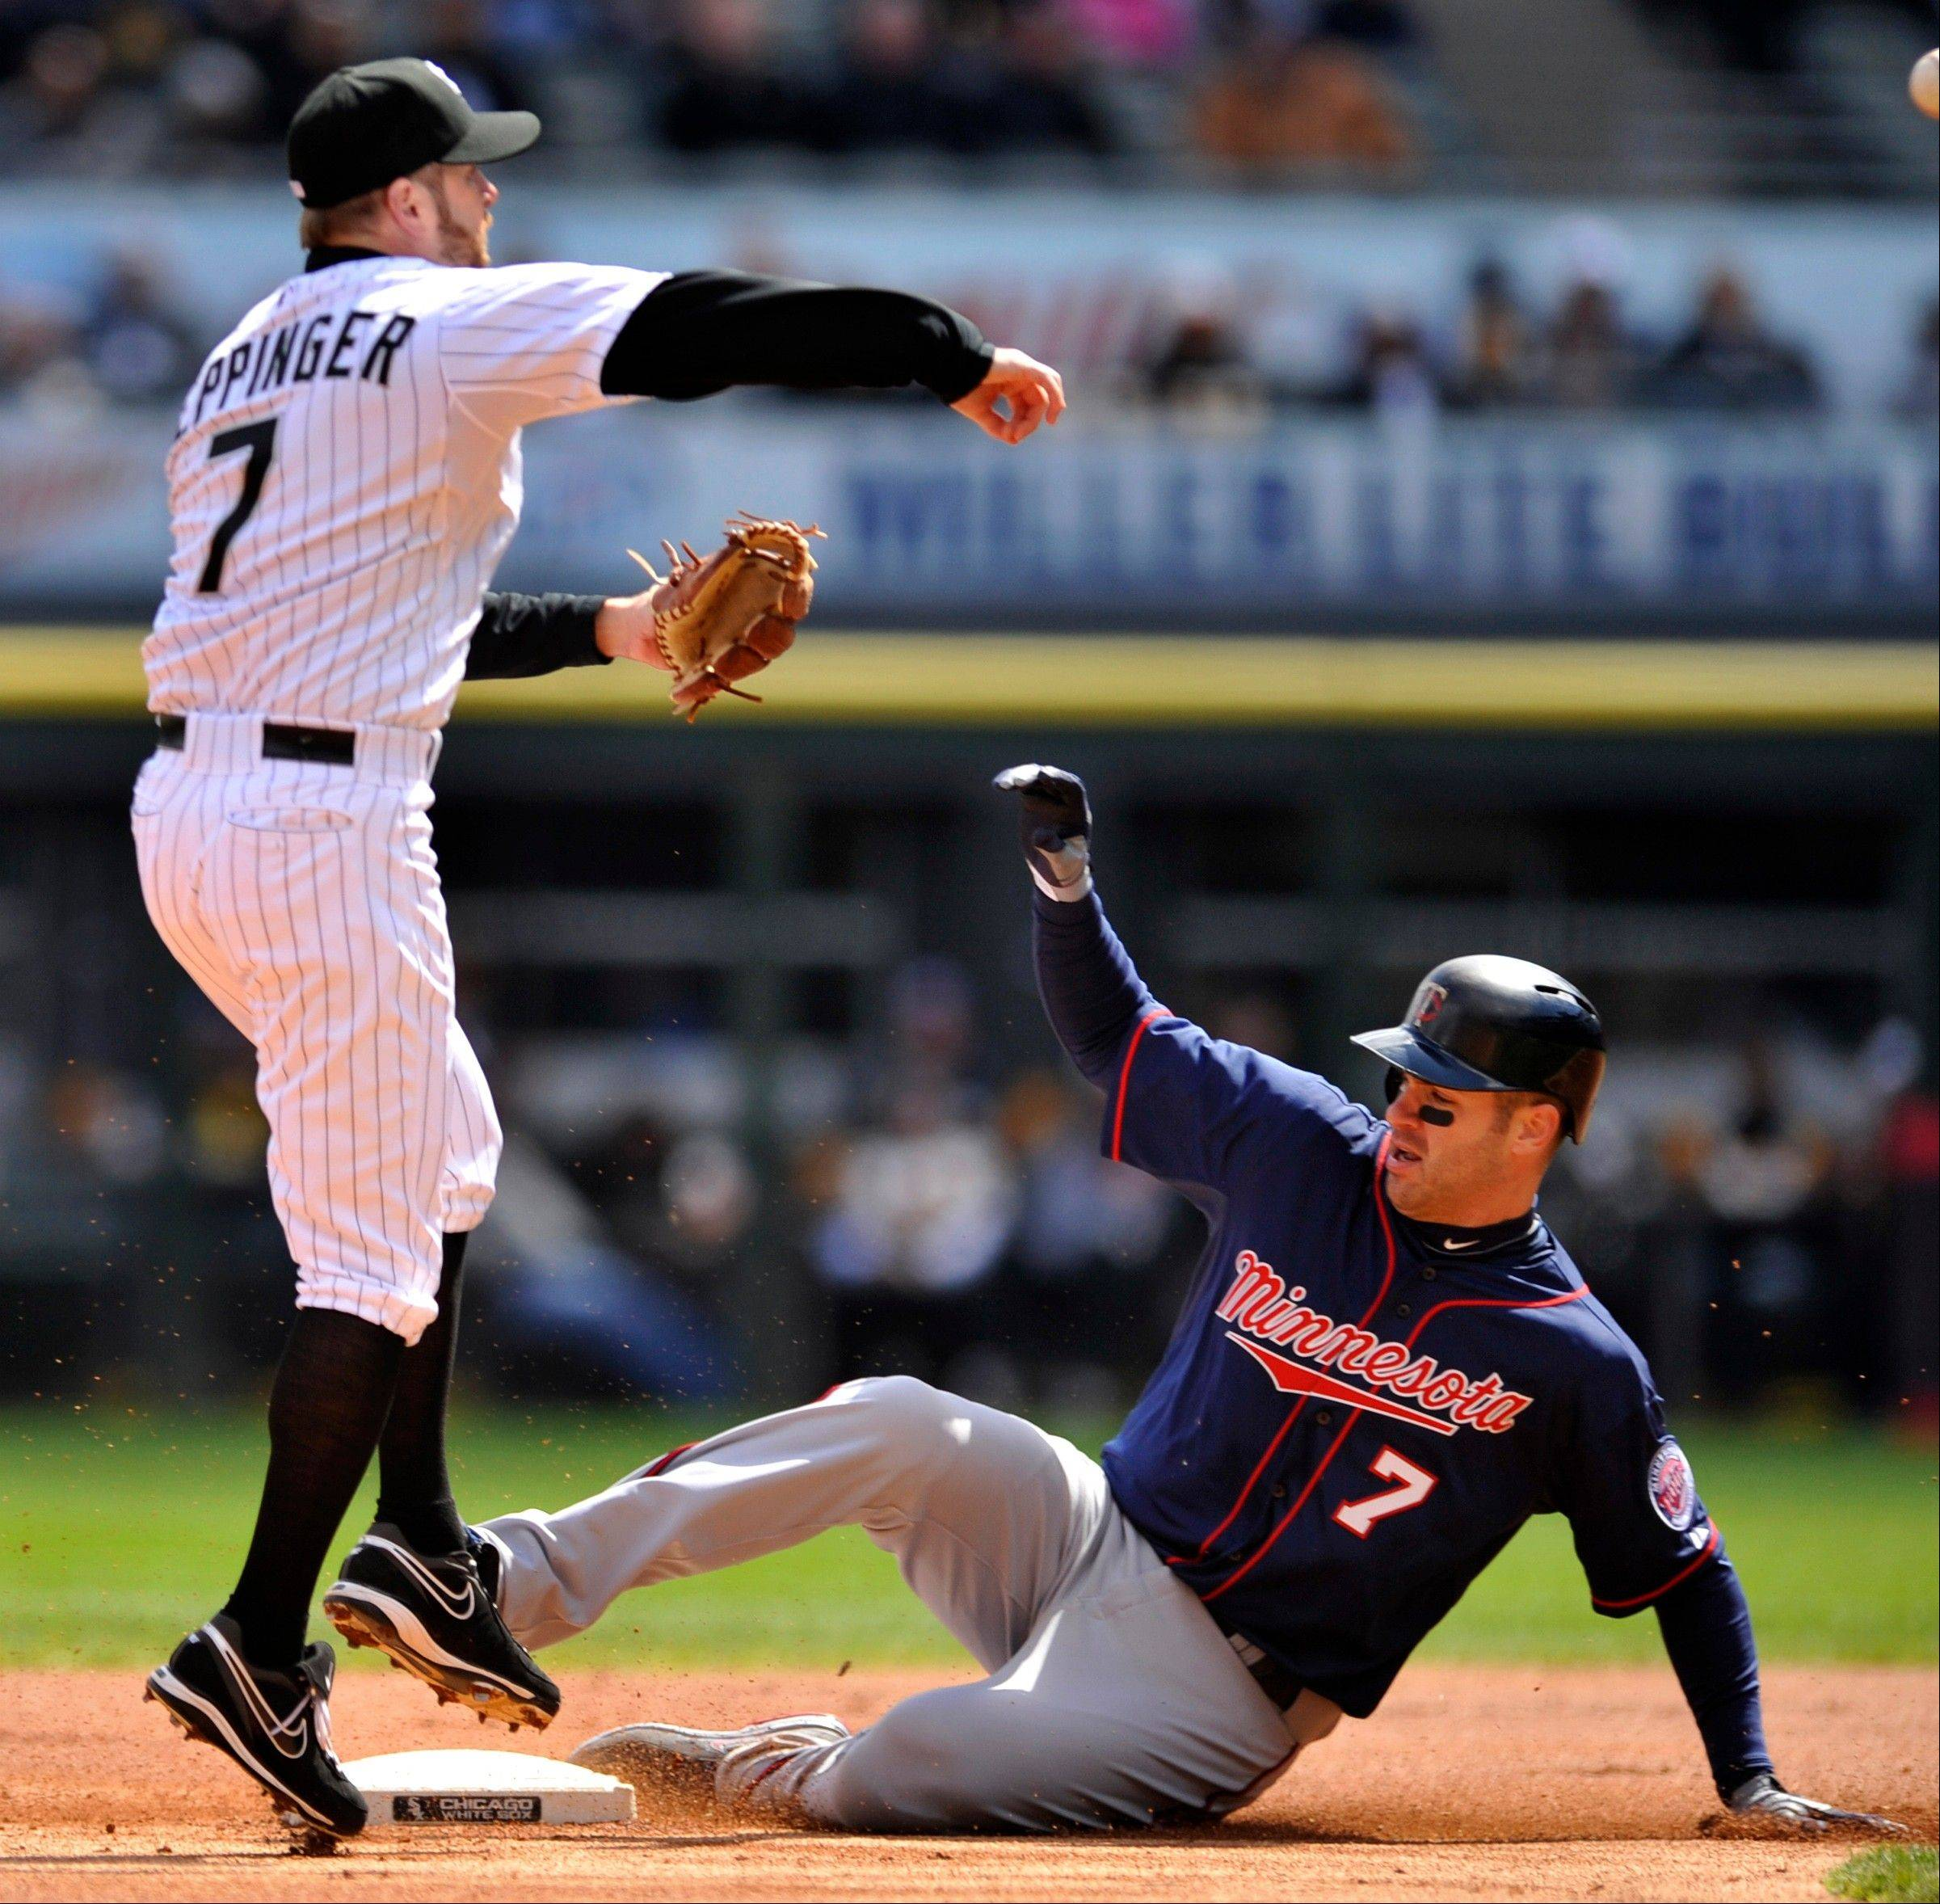 Chicago White Sox second baseman Jeff Keppinger left, watches his throw to first base after forcing out Minnesota Twins' Joe Mauer at second base during the first inning of a baseball game in Chicago, Saturday, April 20, 2013. The Twins' Josh Willingham was safe at first. (AP Photo/Paul Beaty)